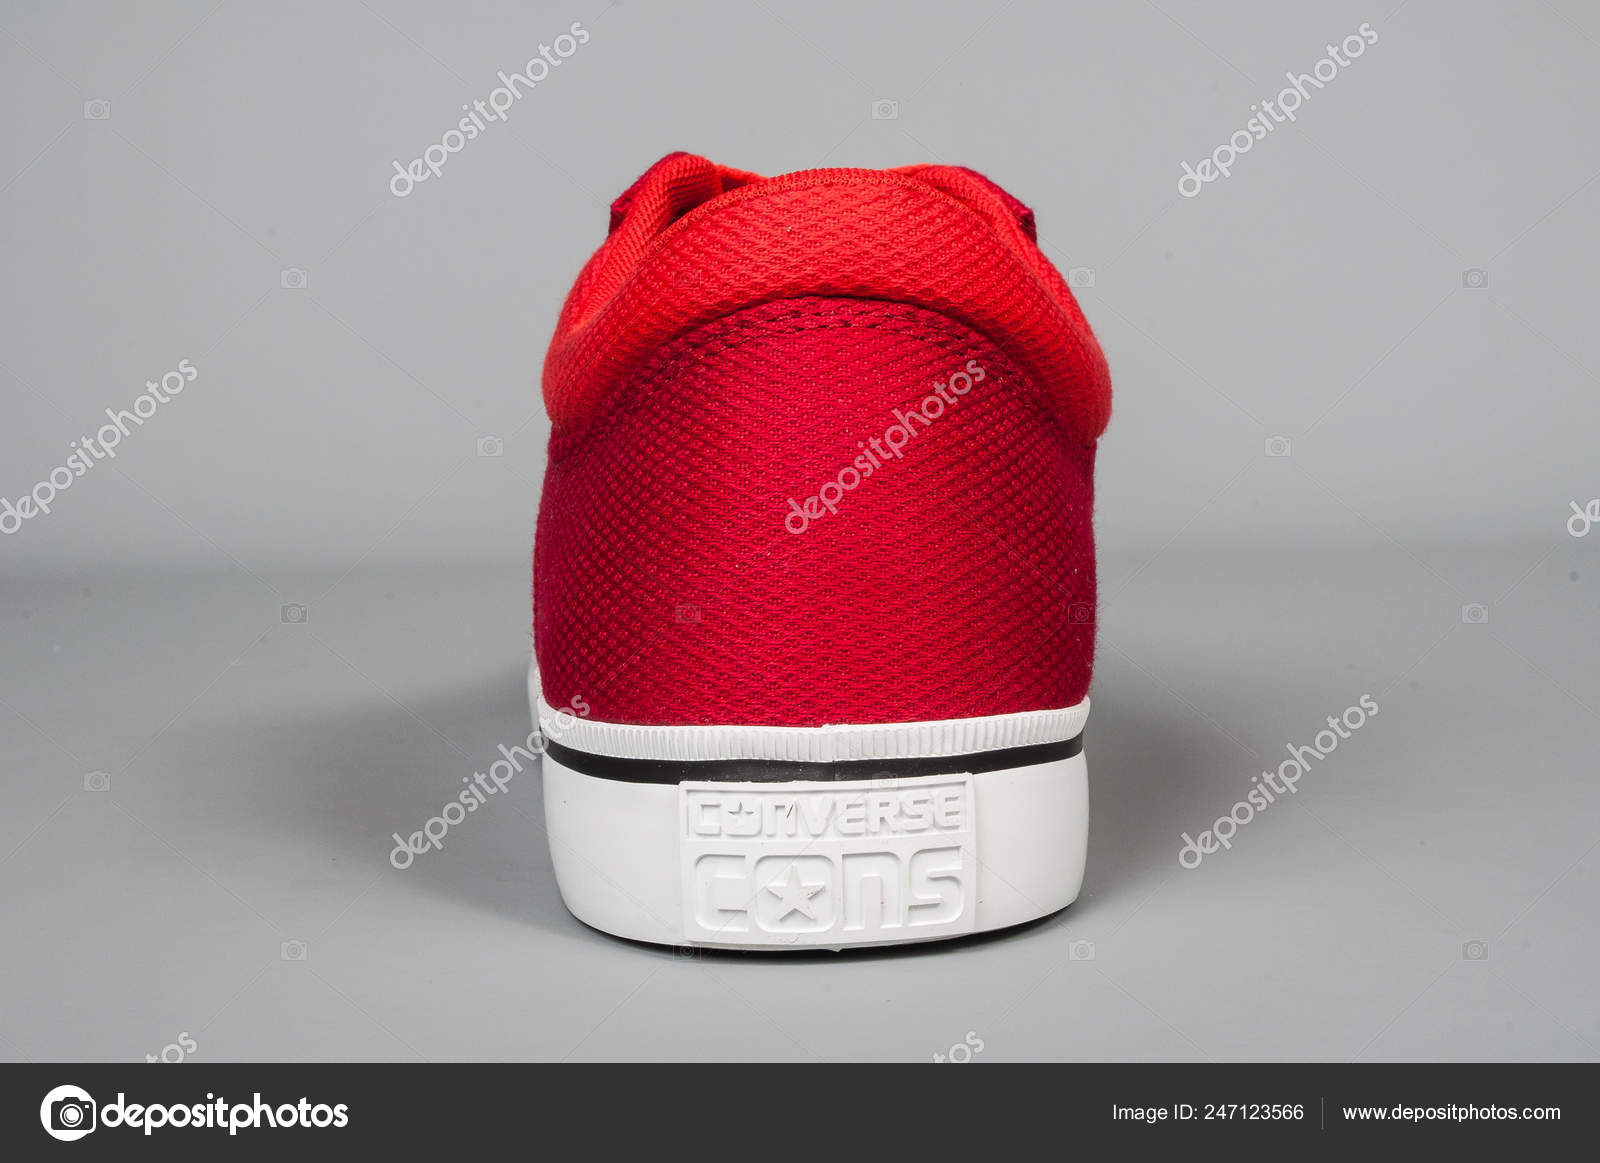 Medellin, Colombia February 24, 2019: CONVERSE Sports Shoes